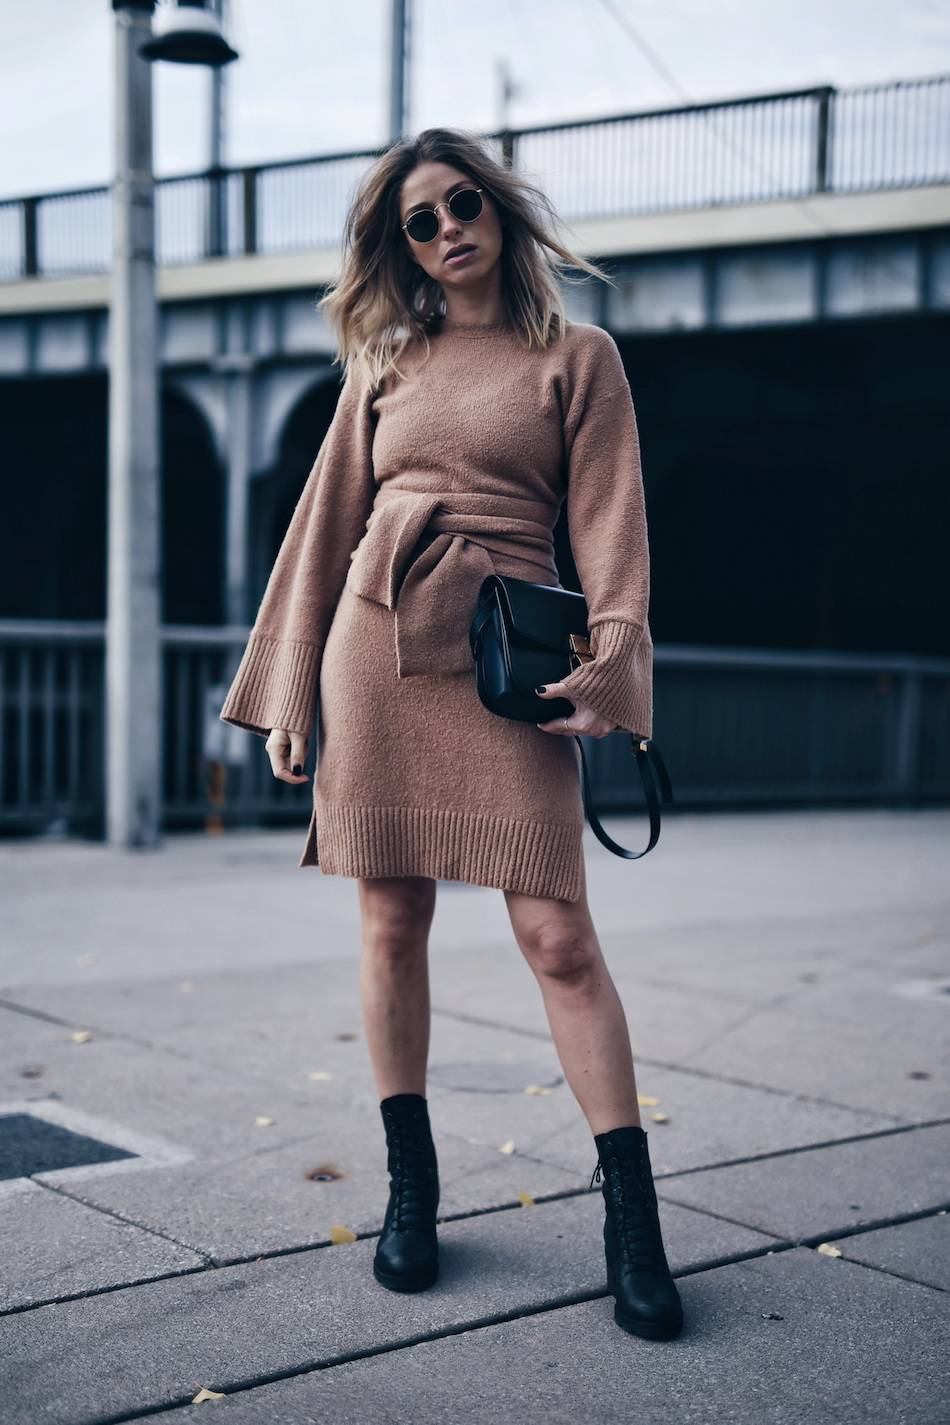 style-and-beauty-blogger-jill-lansky-of-the-august-diaries-wearing-3-1-phillip-lim-wide-sleeve-belted-dress-celine-black-box-bag-and-ld-tuttle-combat-boots